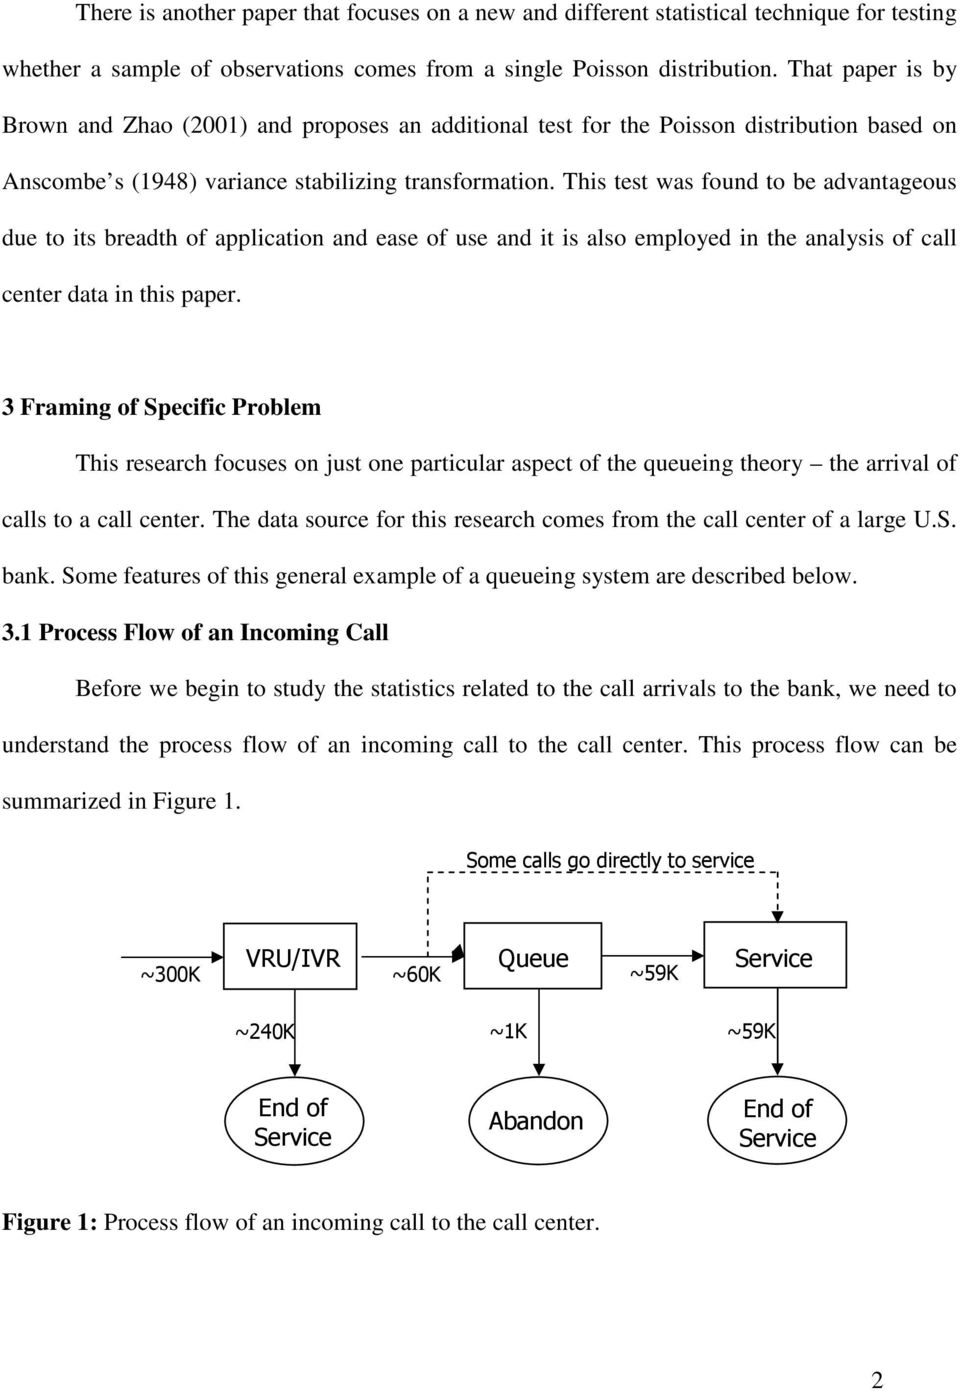 This test was found to be advantageous due to its breadth of application and ease of use and it is also employed in the analysis of call center data in this paper.